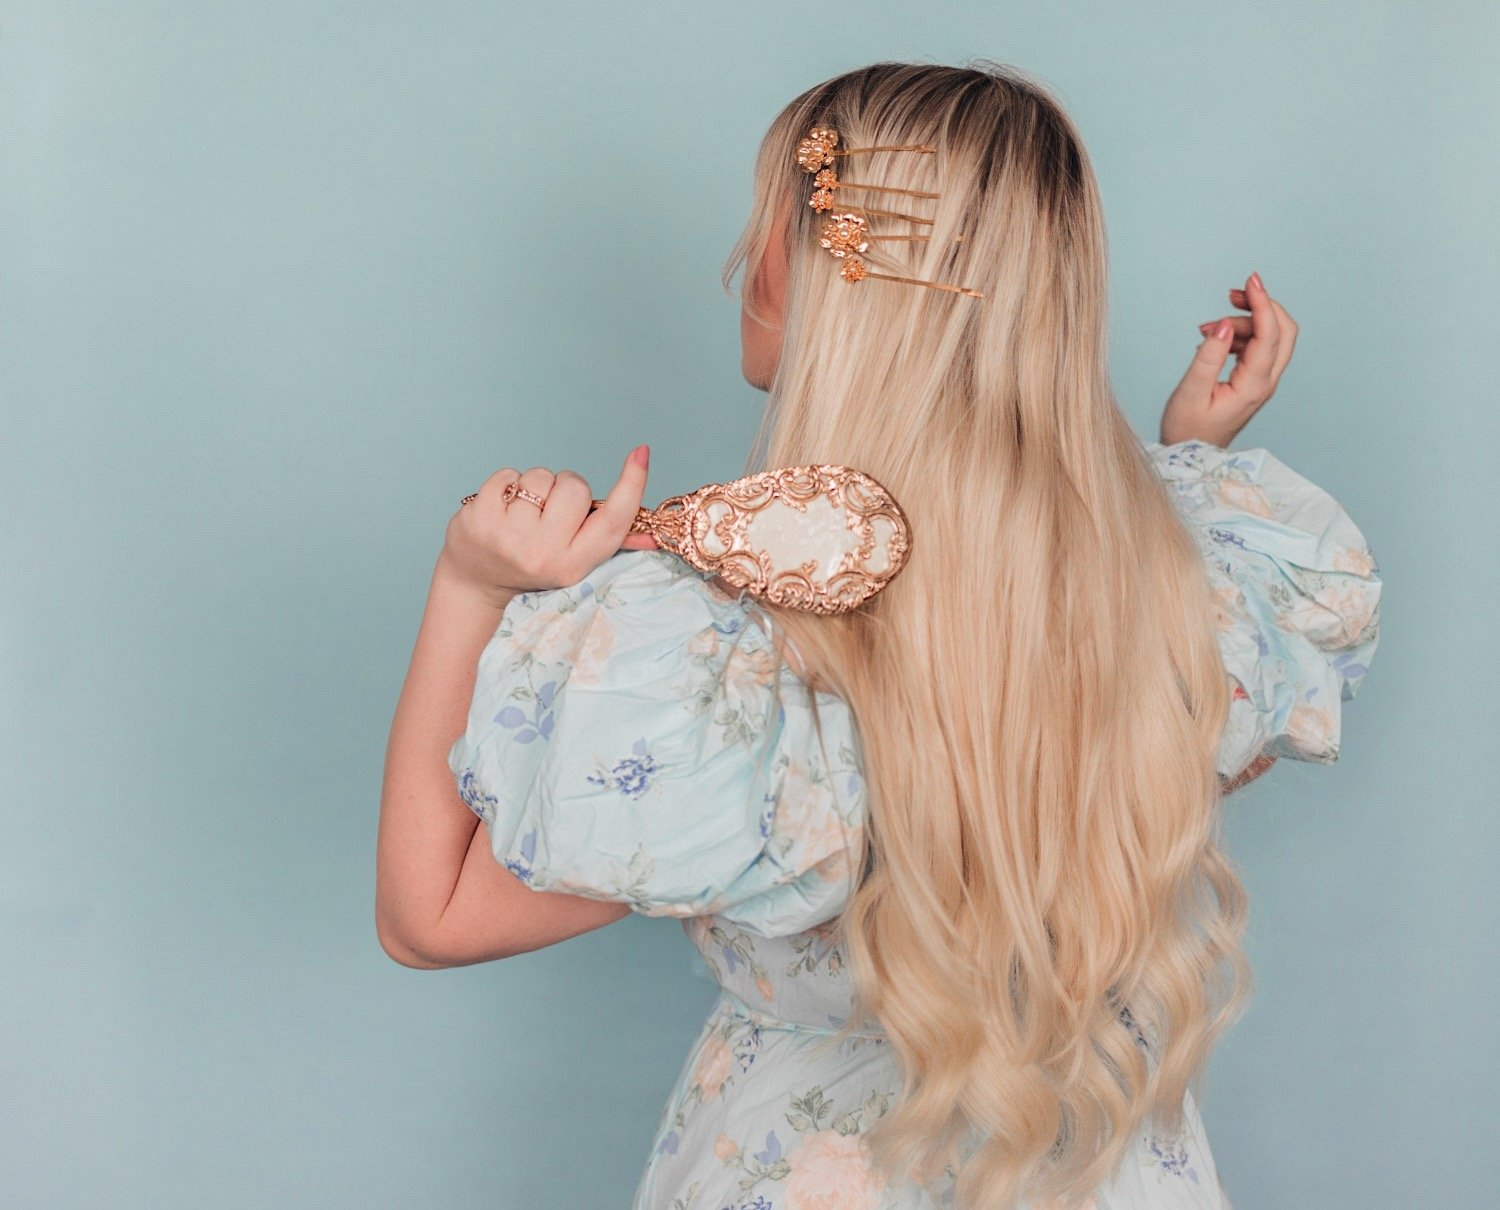 Elizabeth Hugen of Lizzie in Lace shares 5 simple summer hairstyles using hair accessories including pretty gold floral bobby pins